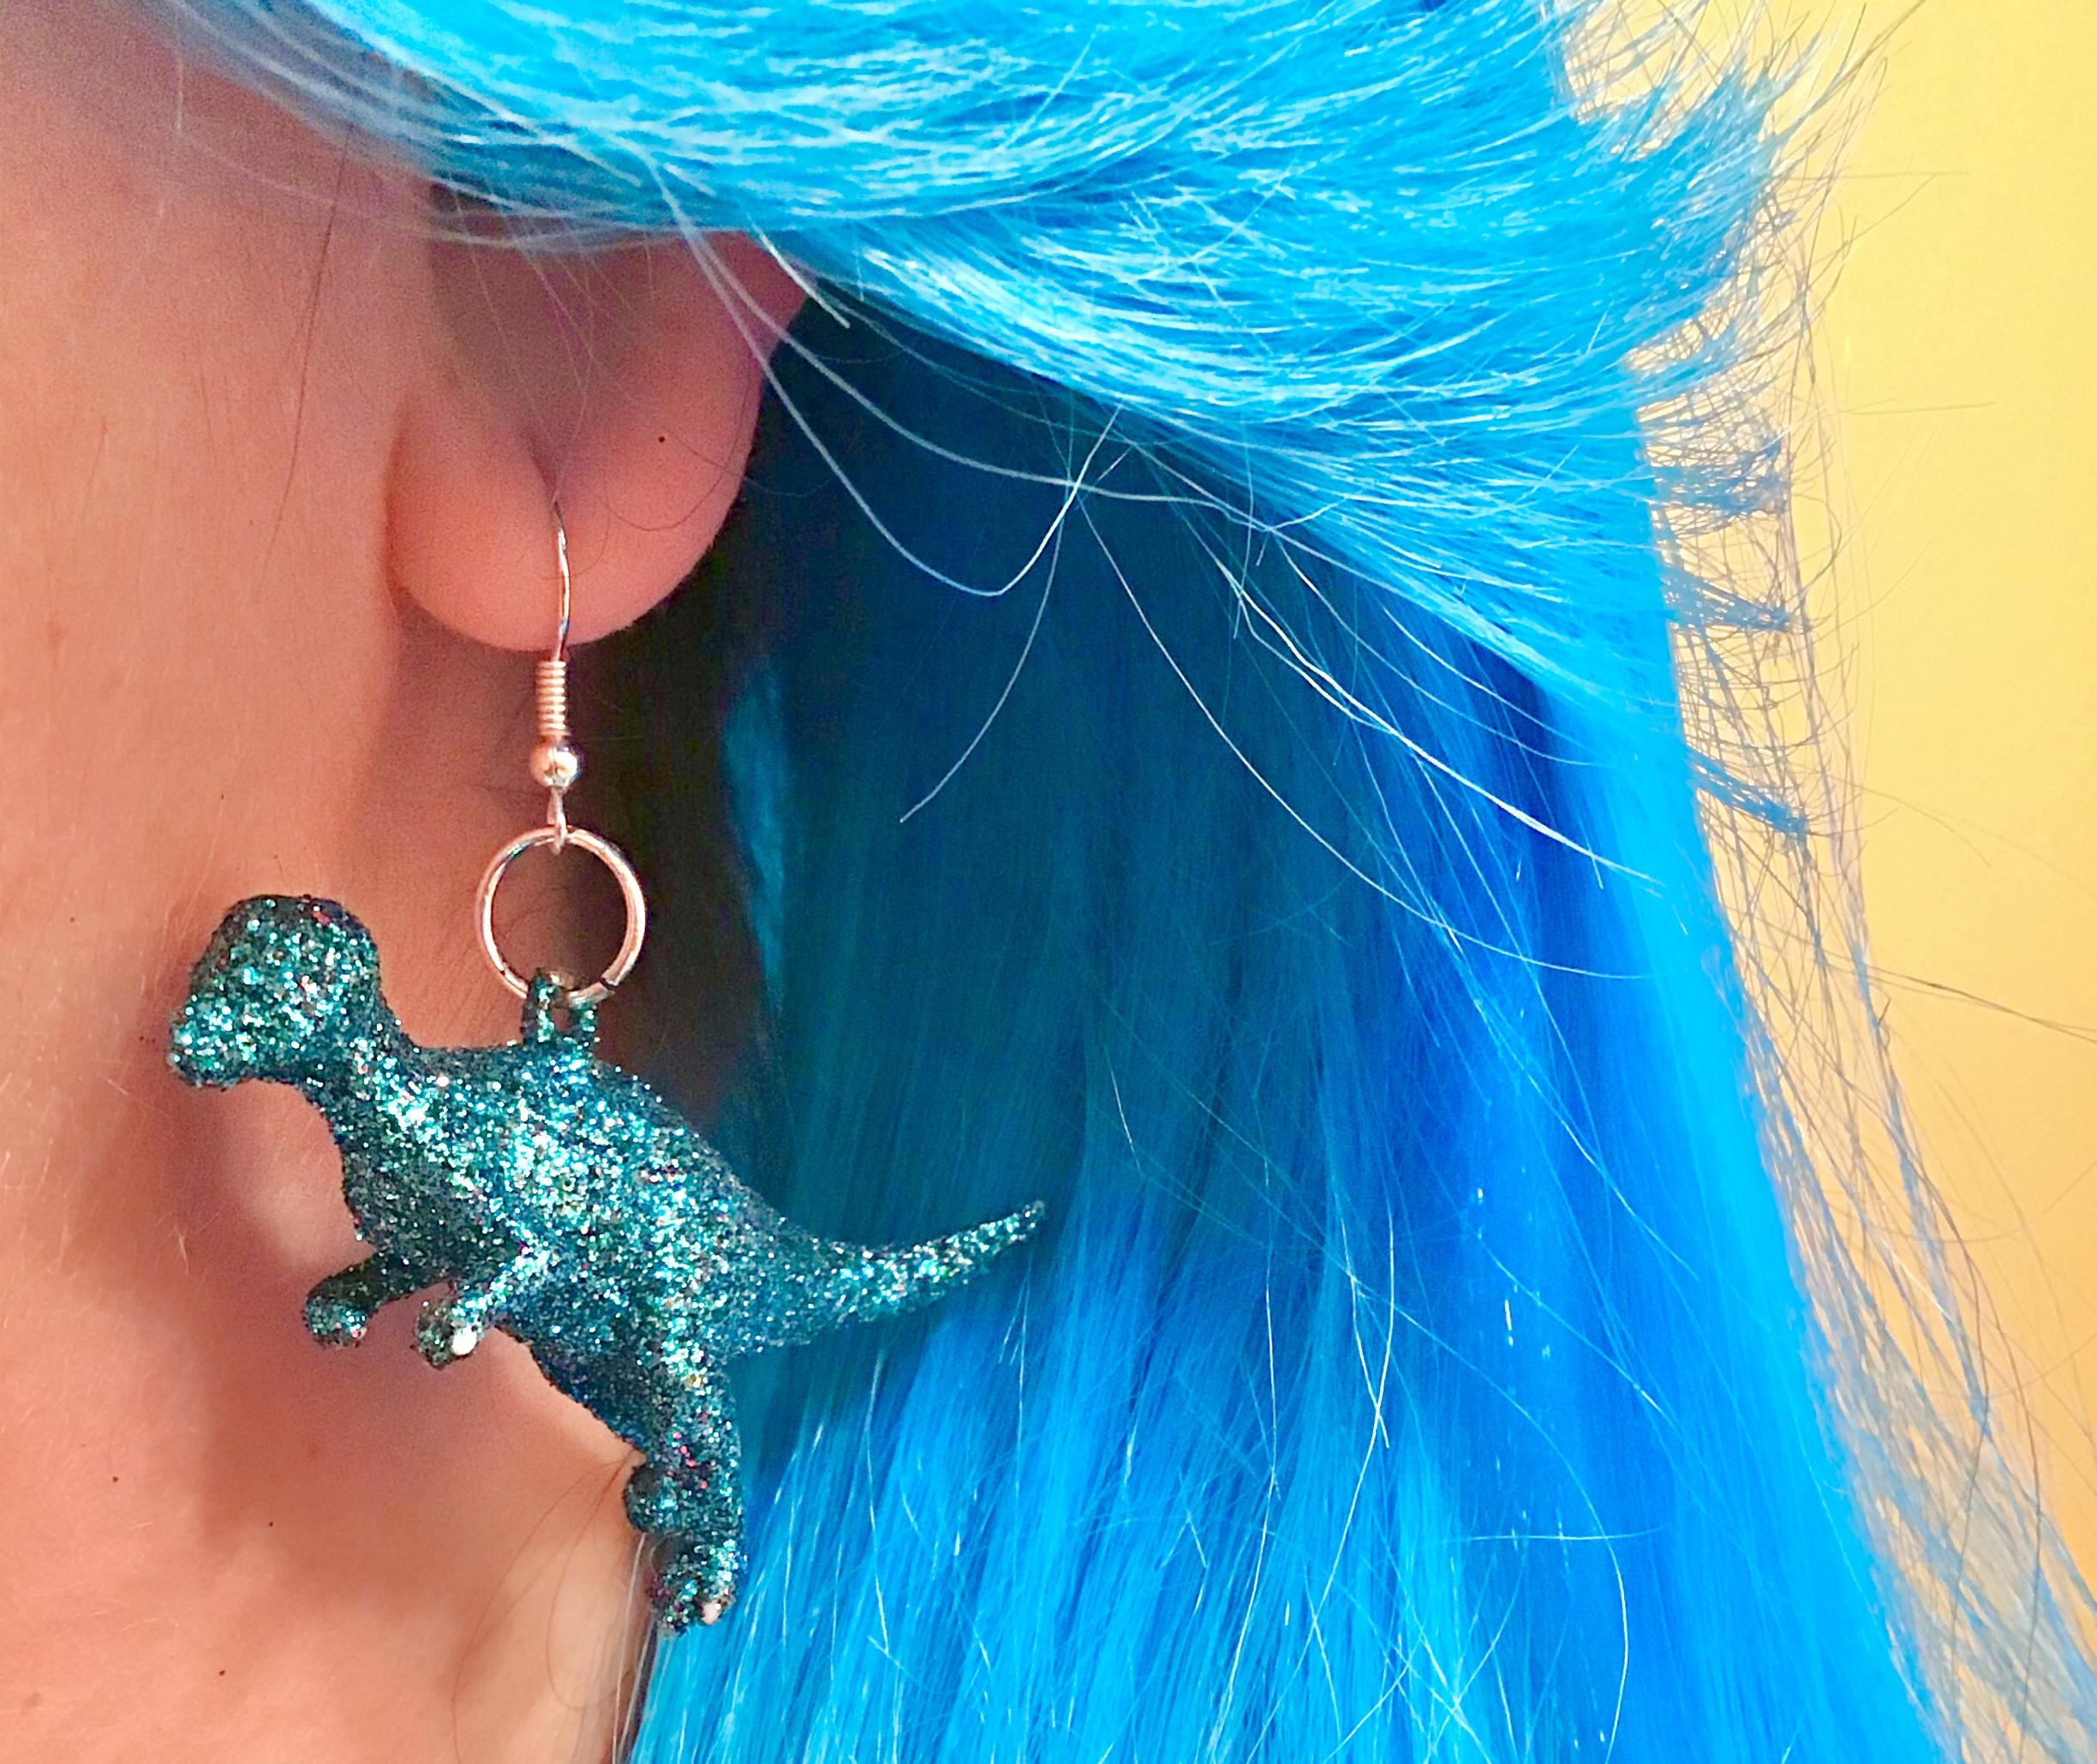 Glitter Dinosaur Earrings DIY - Finished Fashion